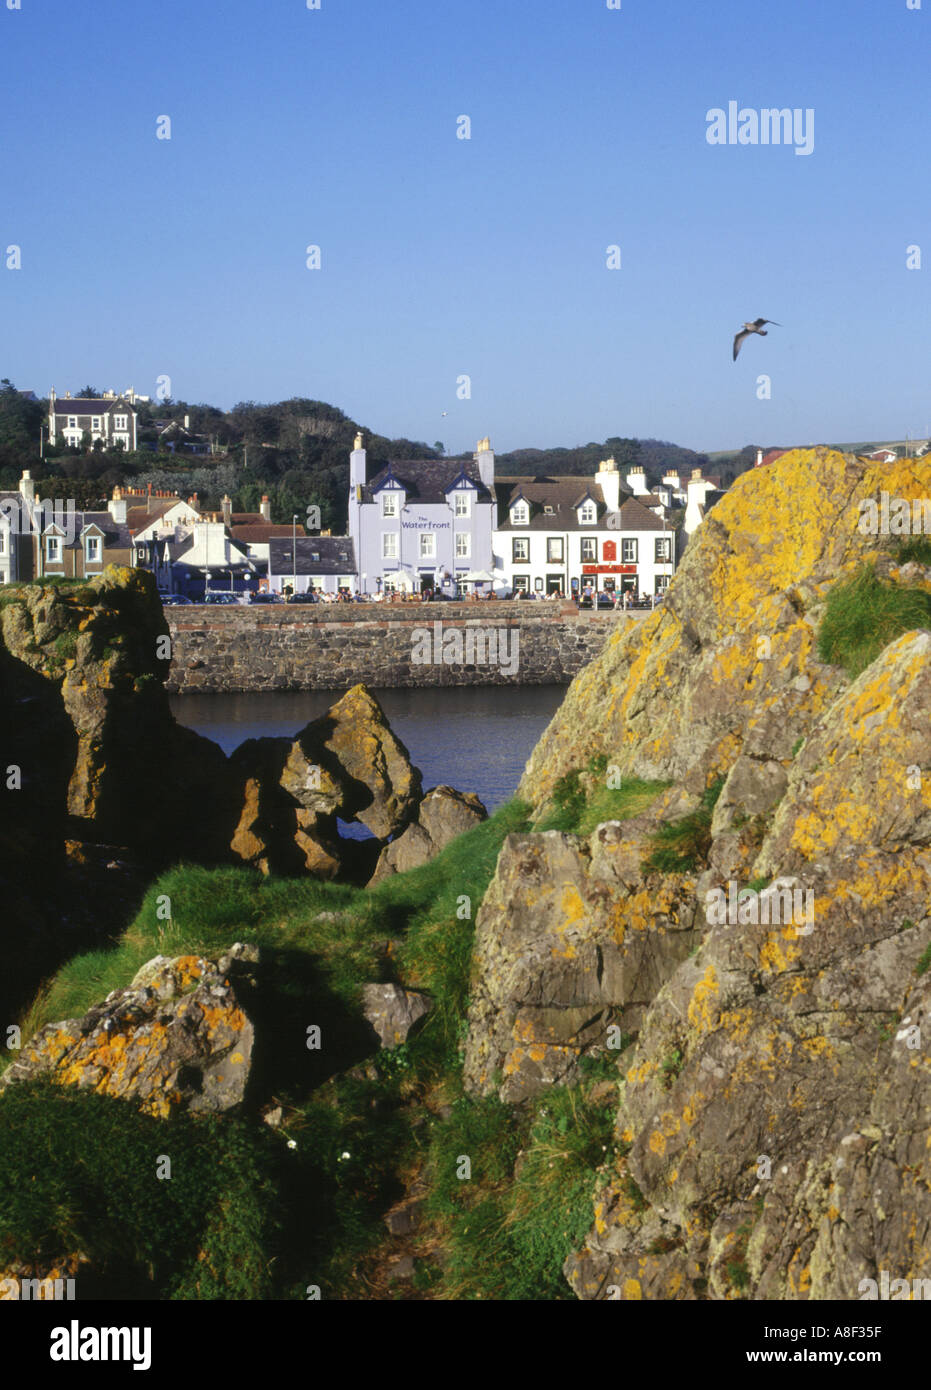 dh Harbour PORTPATRICK DUMFRIES Rocky harbour houses waterfront sea seagull bird Stock Photo